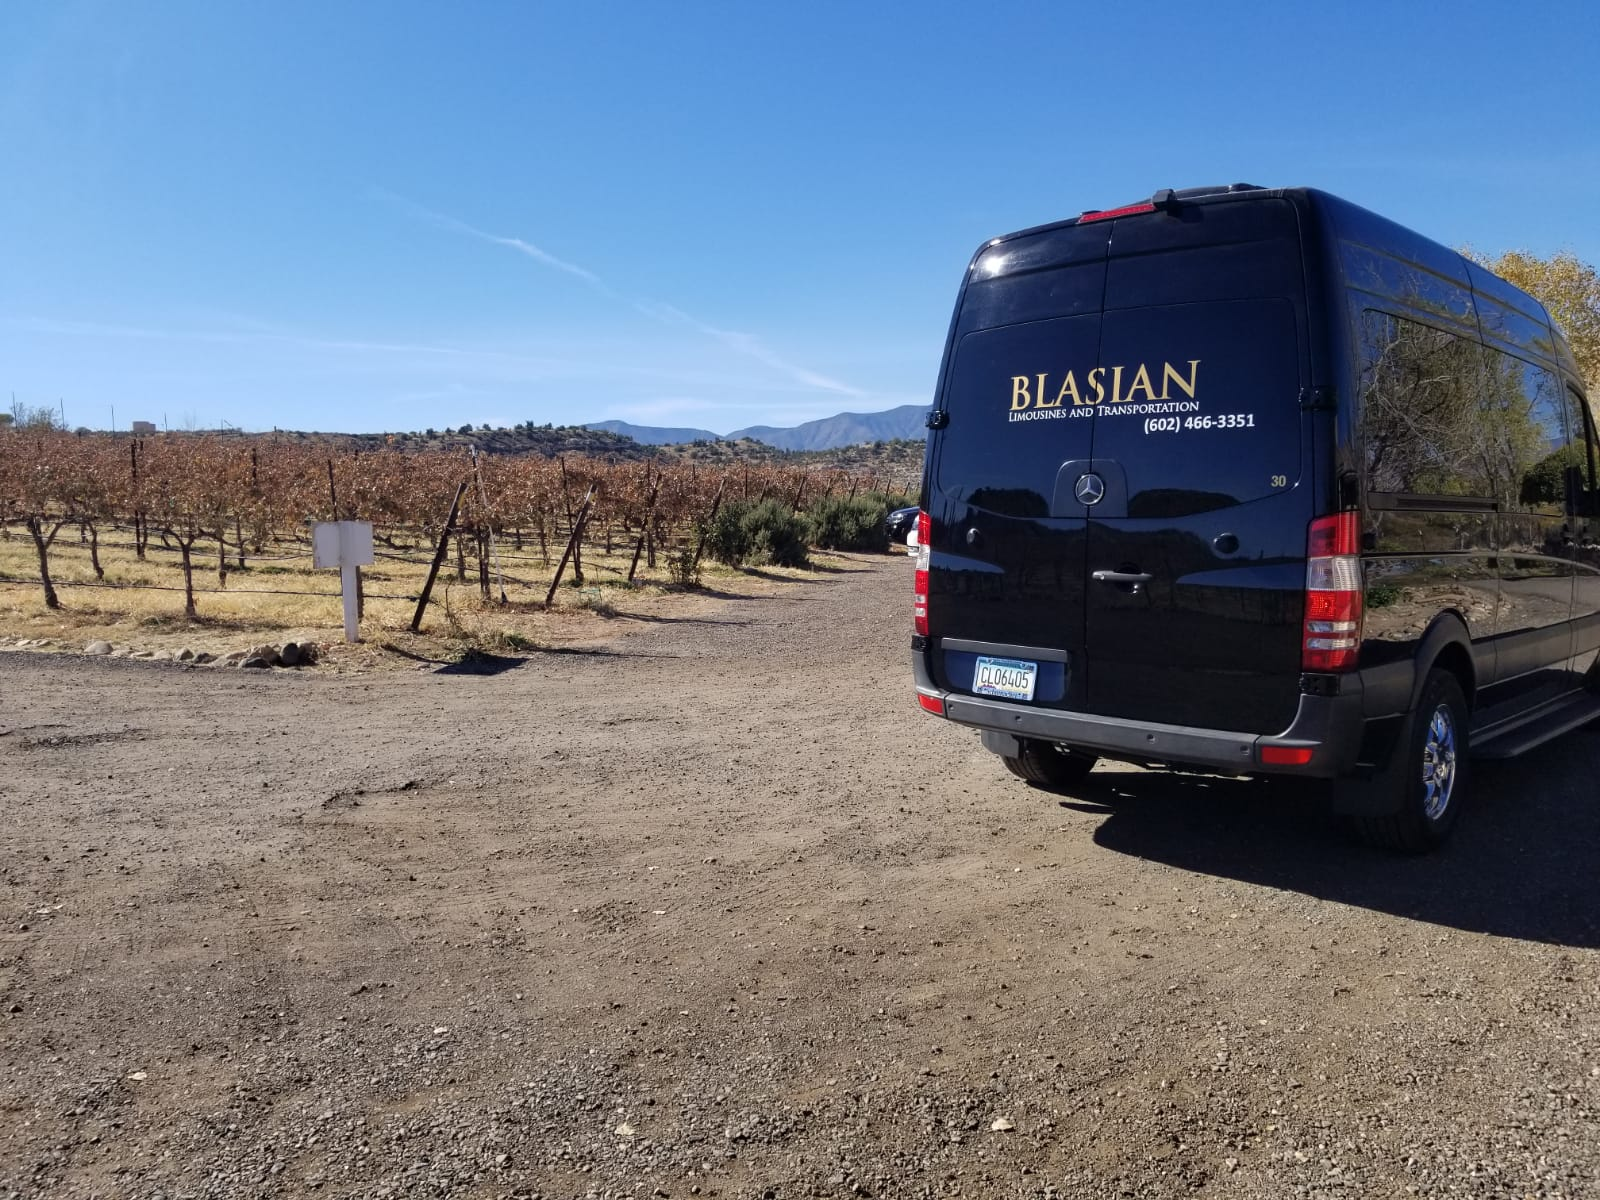 Arizona Wine tour Blasian Limo and transportation